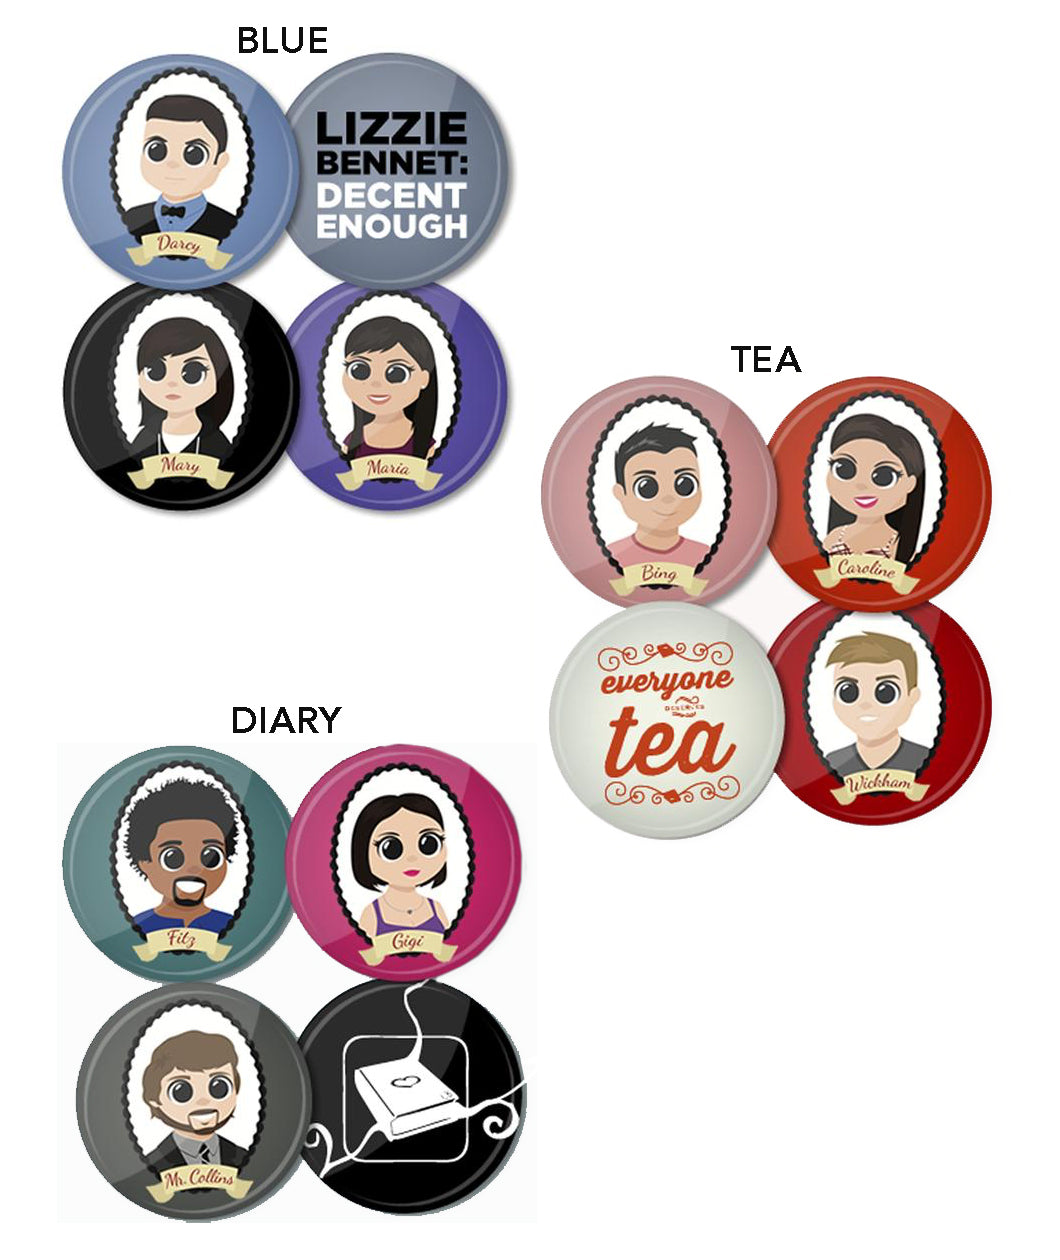 Lizzie Bennet Button Packs